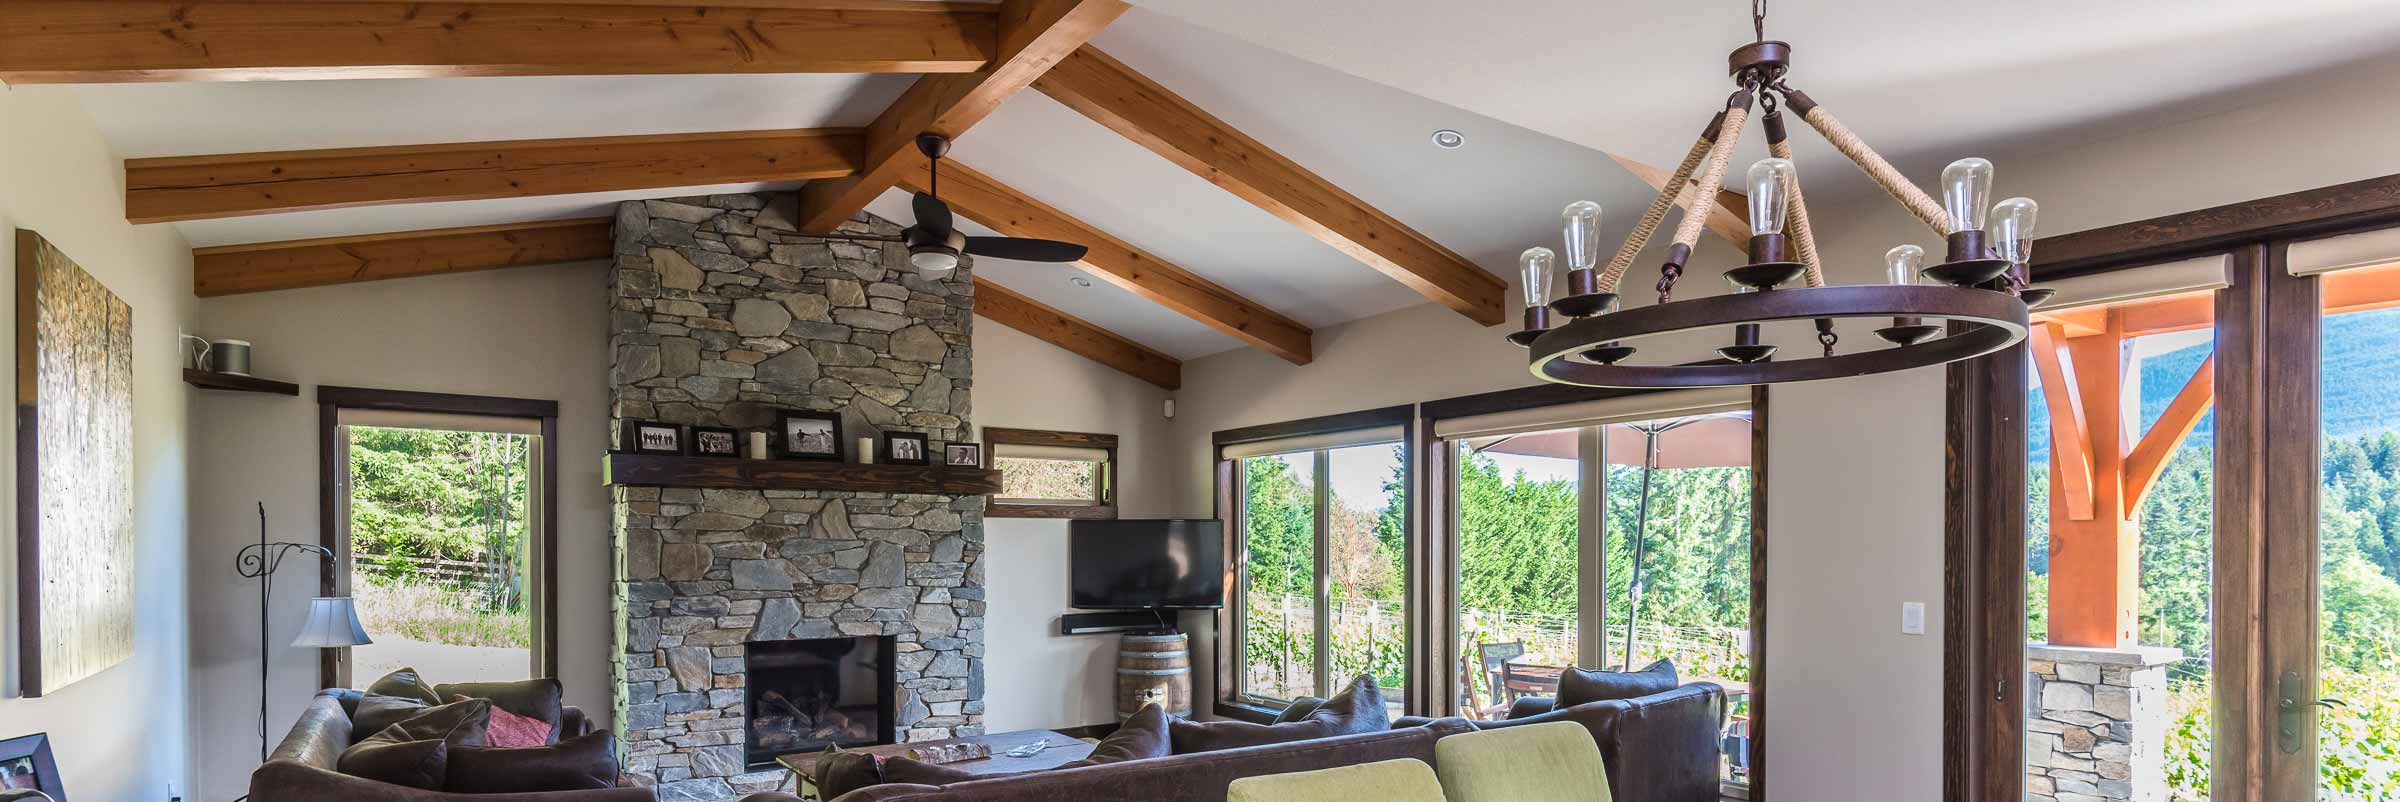 One Example Of This Is A Vaulted Ceiling With An Exposed Timber Truss  System, Which Is Very Popular In Main Living Areas, Great Rooms And Master  Bedrooms.